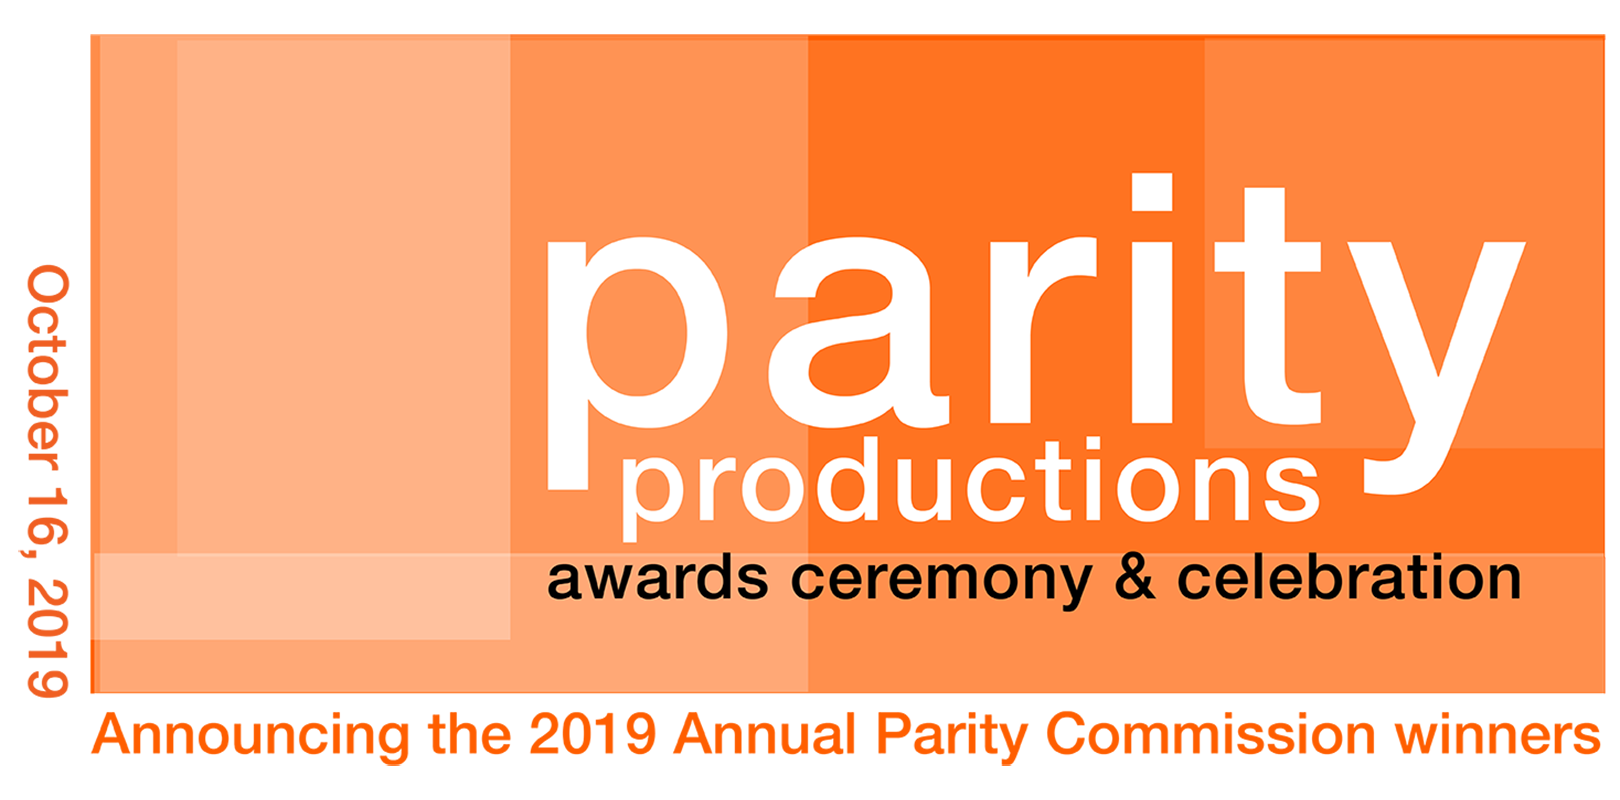 AWARDS-CEREMONY-LOGO-orange-1620x800.png